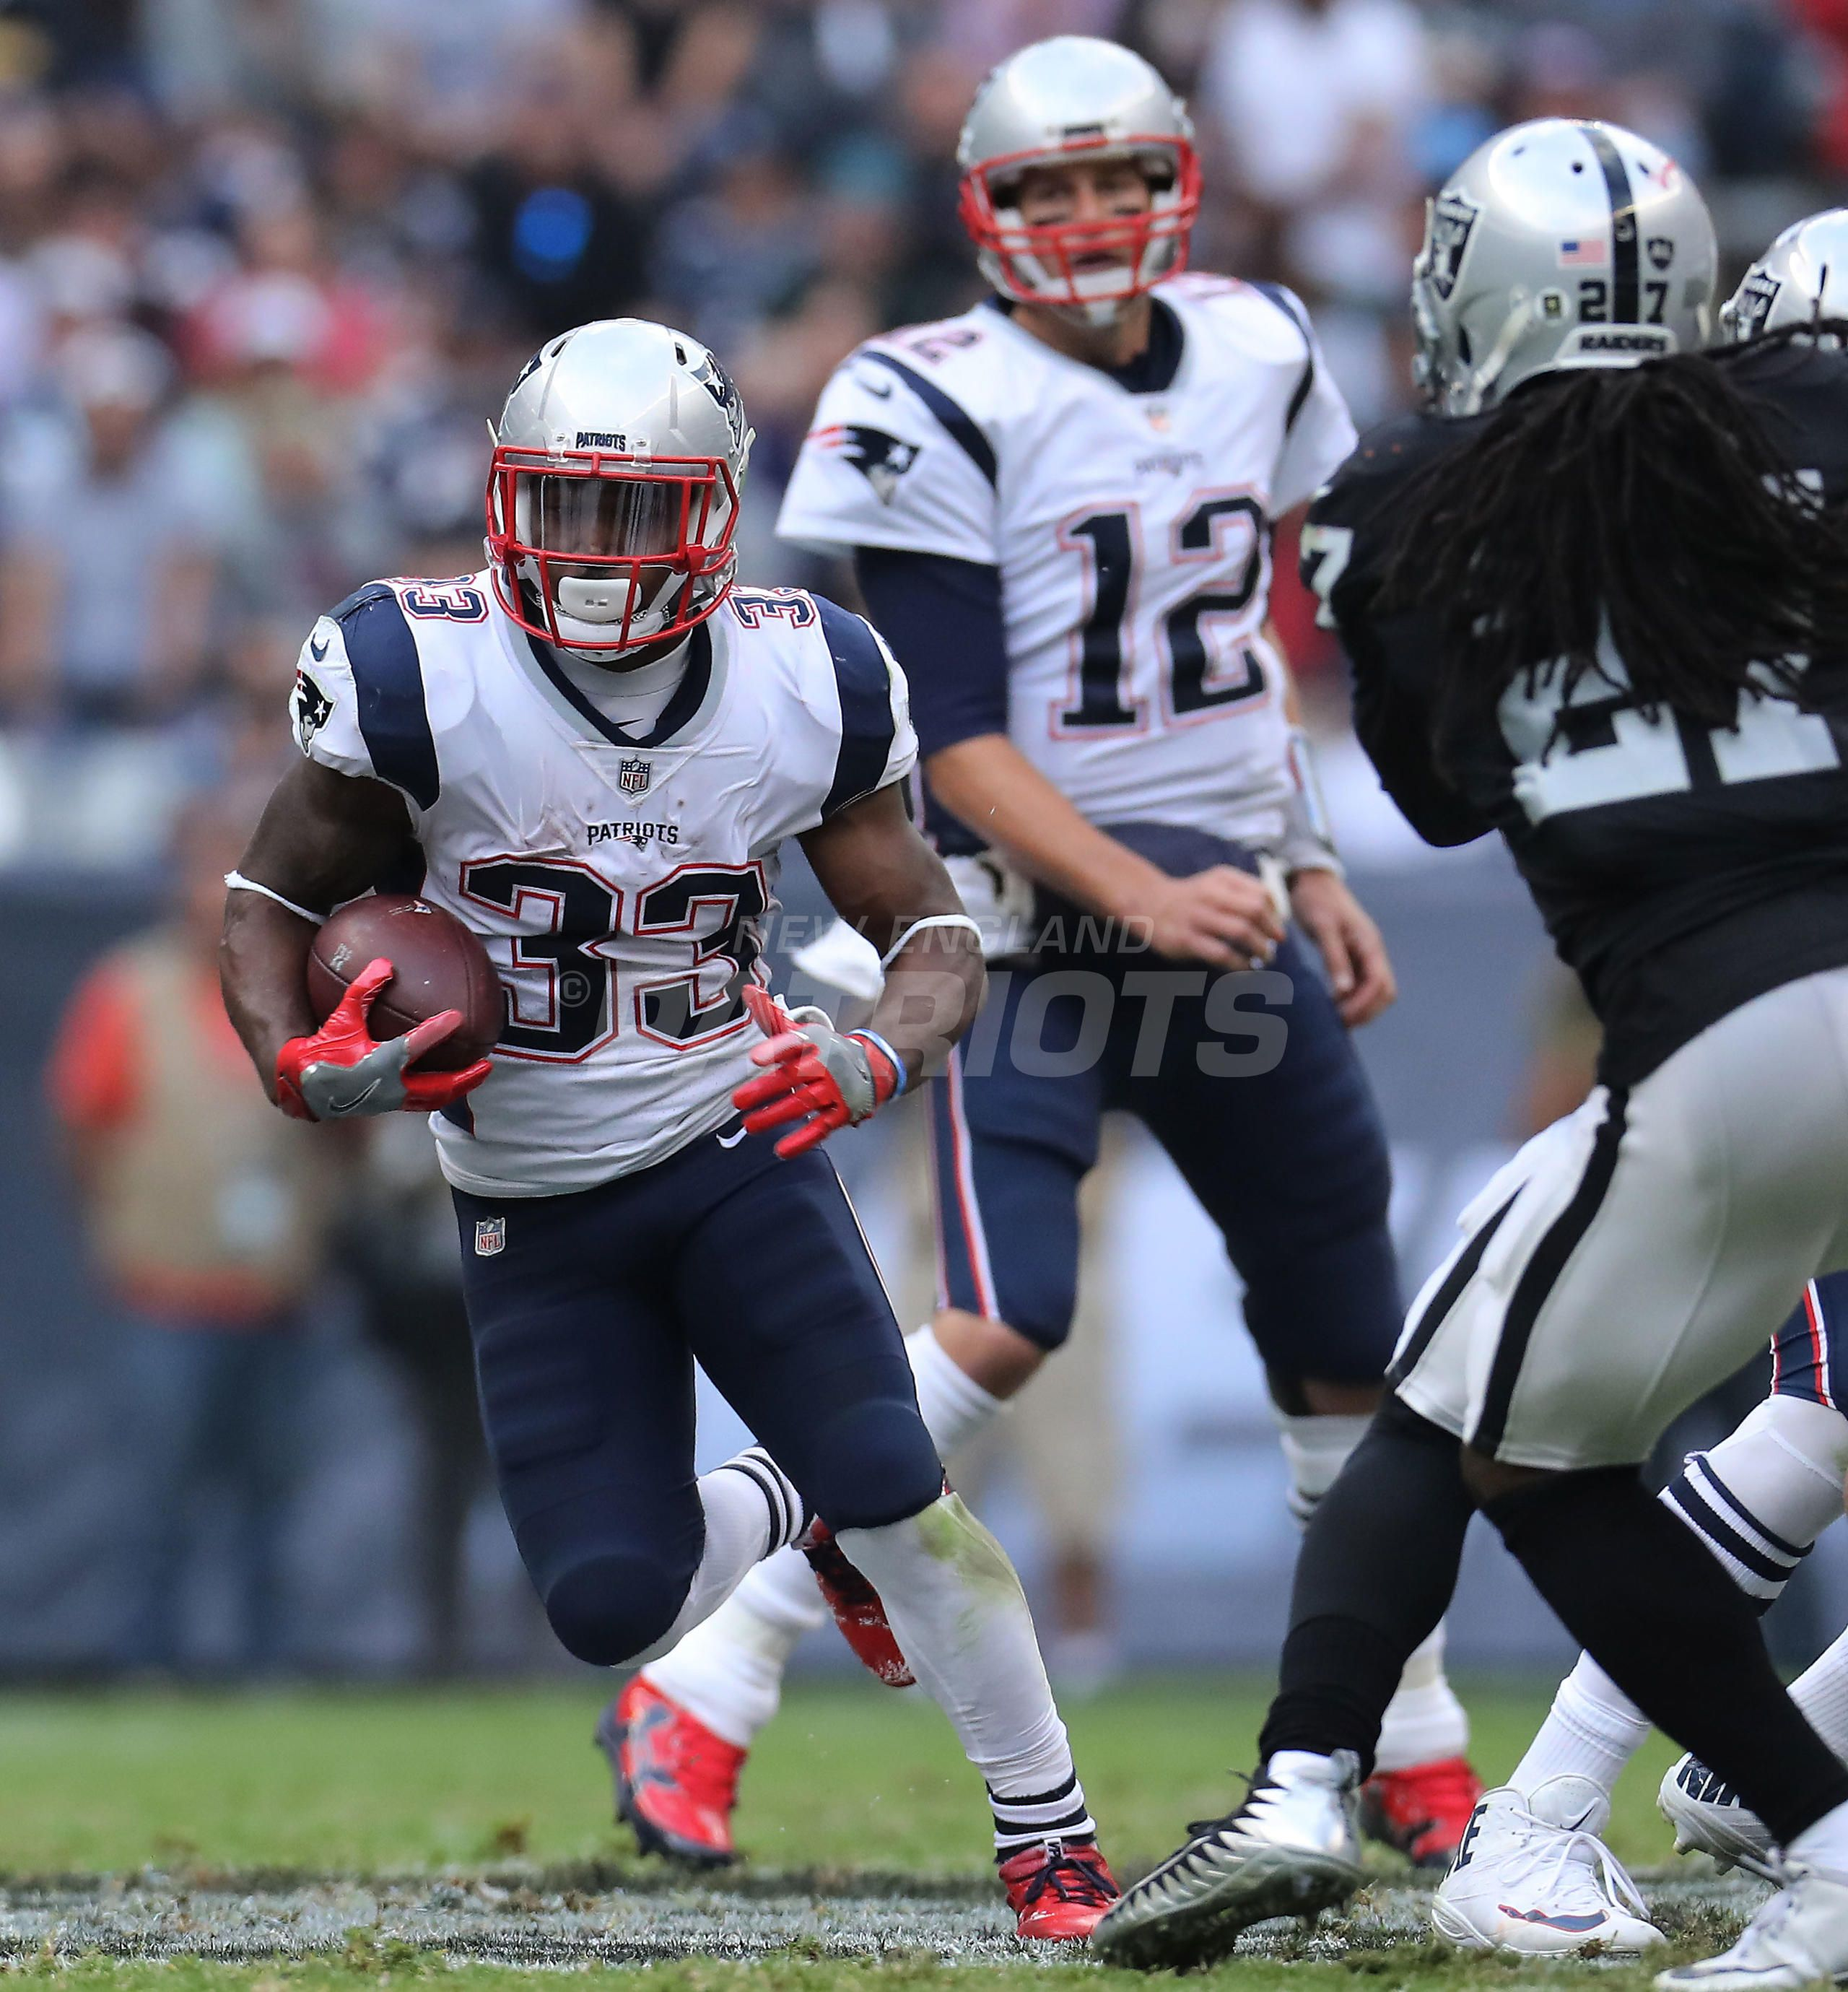 Silverman S Best Presented By Carmax Patriots Raiders 11 19 Patriots New England Patriots England Game